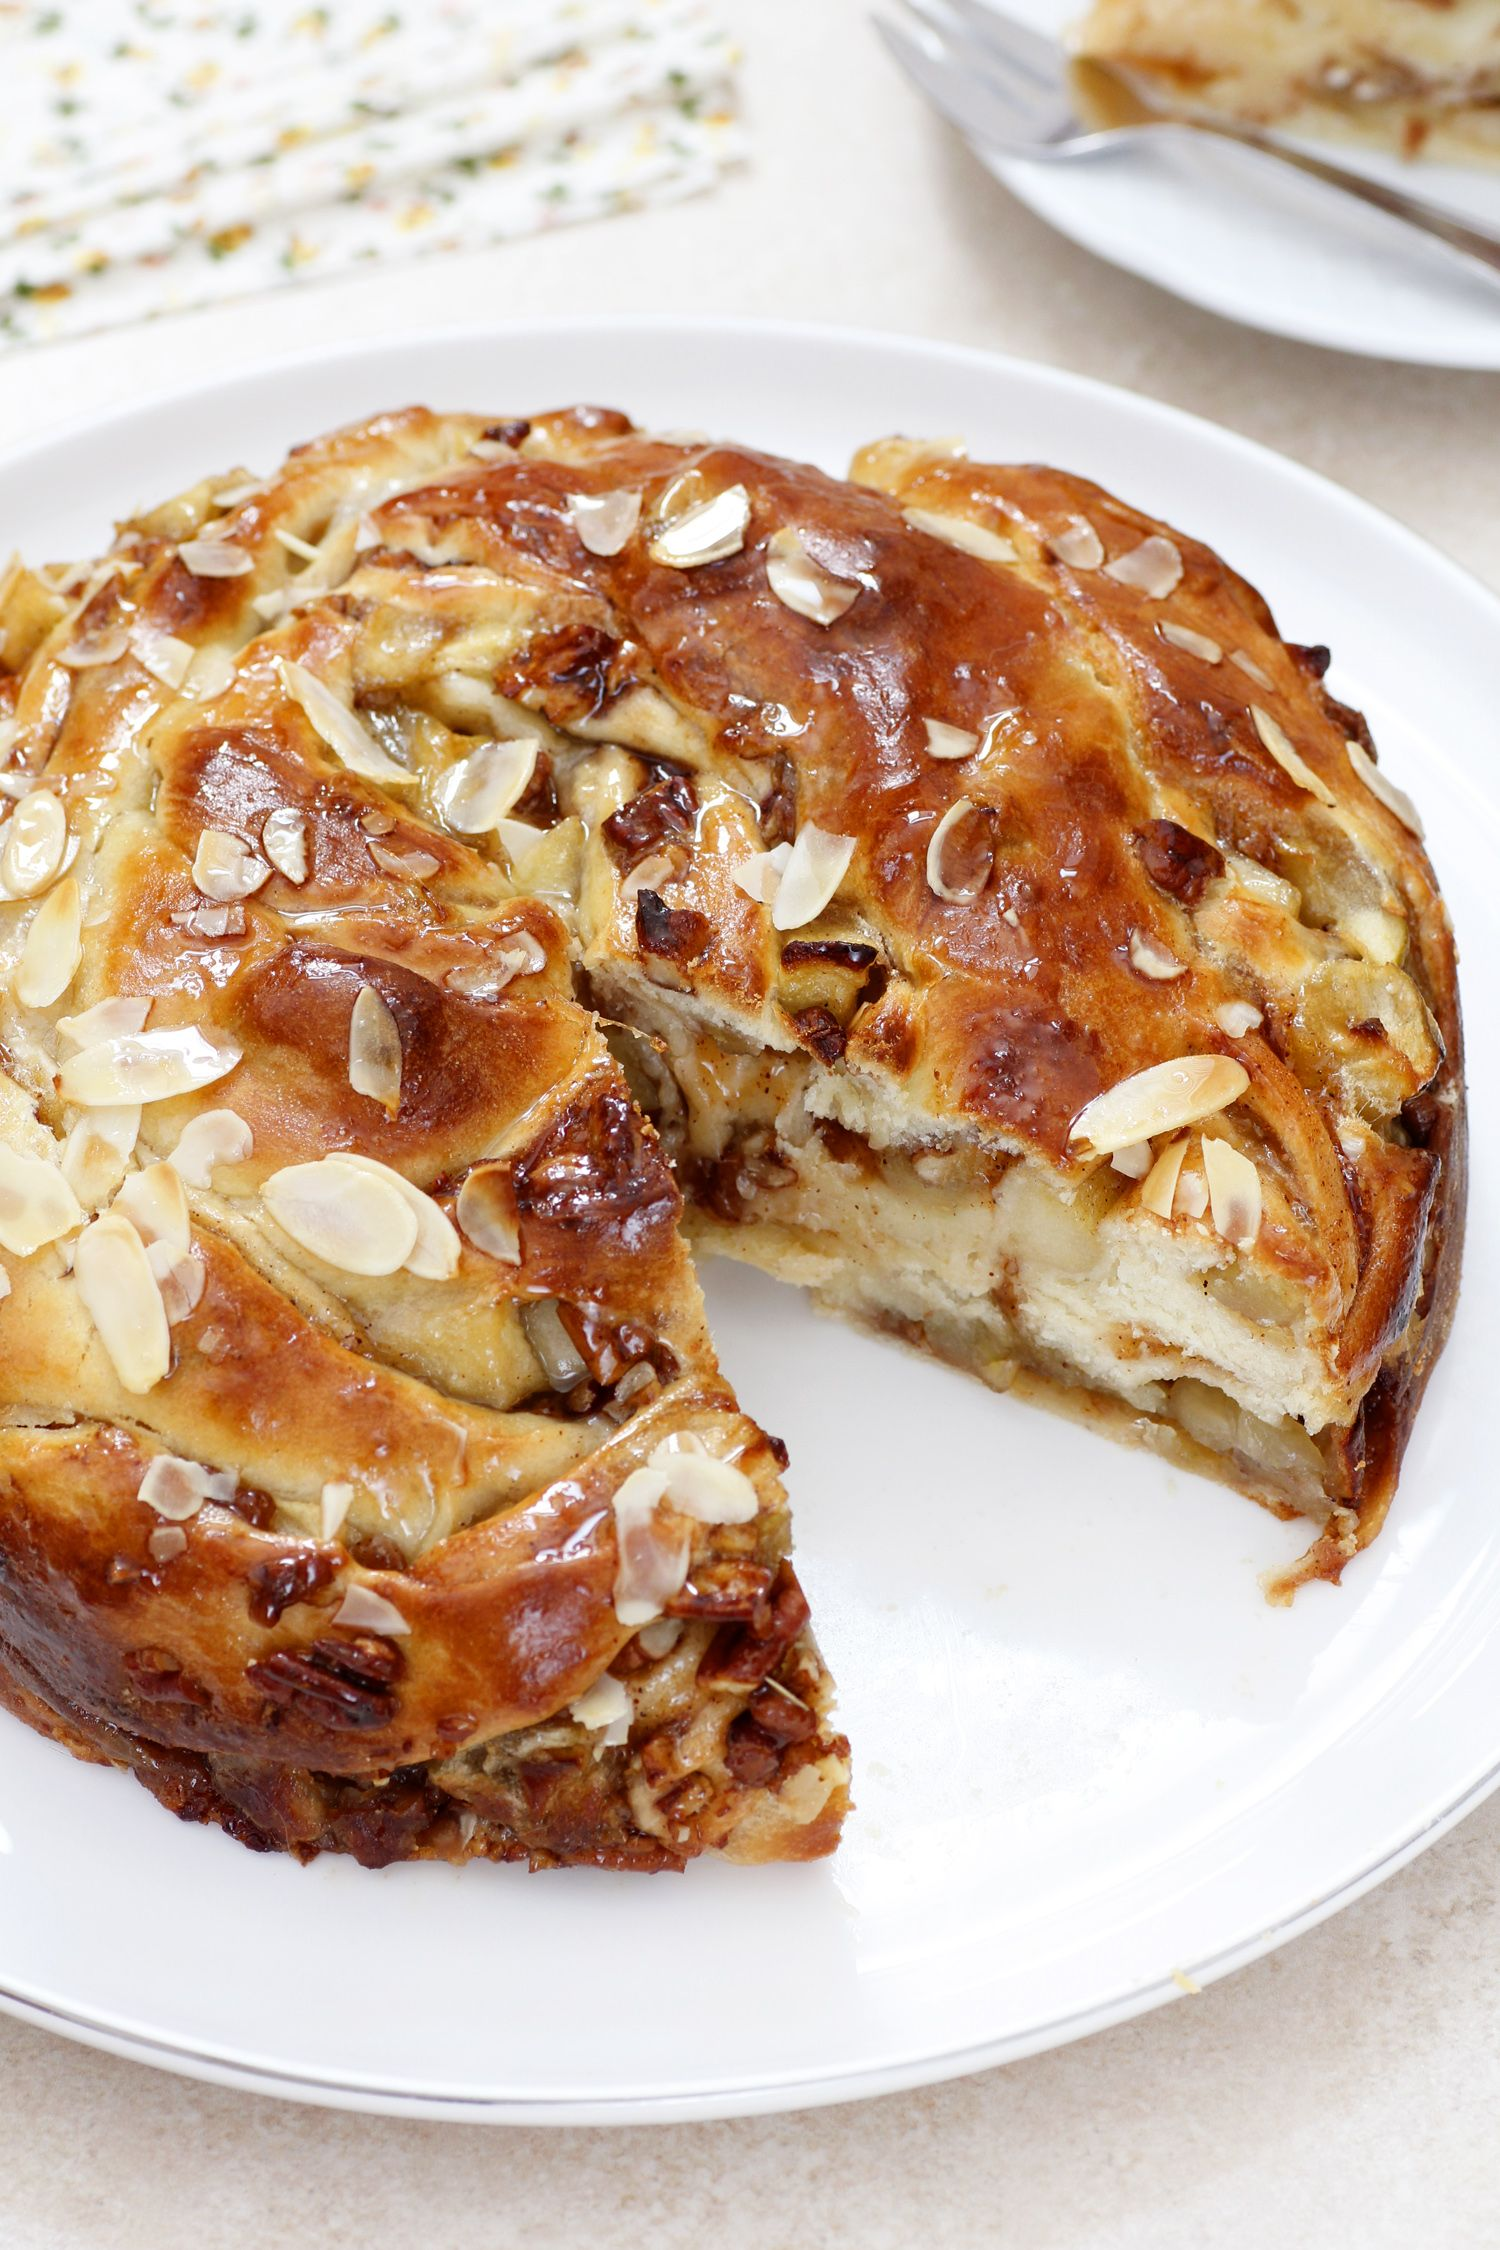 Cinnamon Challah Crown with Apples and Pecans